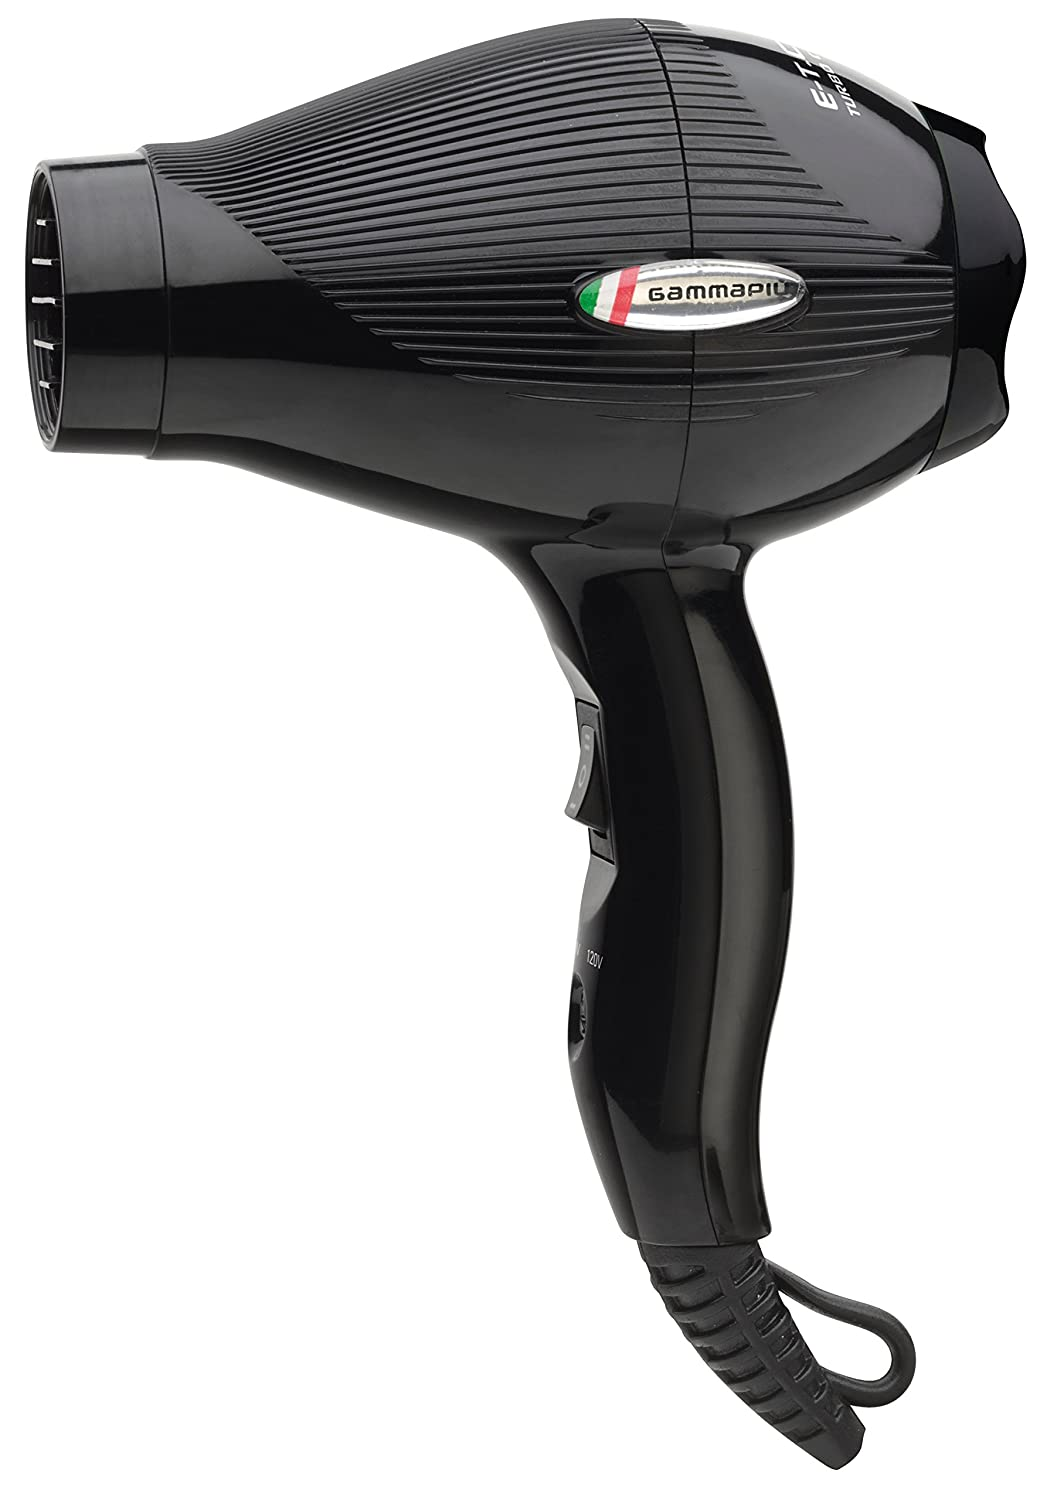 Amazon.com  Gammapiu ETC Travel Hair Dryer - Professional Hair Dryer for  Travel - Duel Voltage US and European Hair Dryer - Black  Health   Personal  Care 427f21874b4